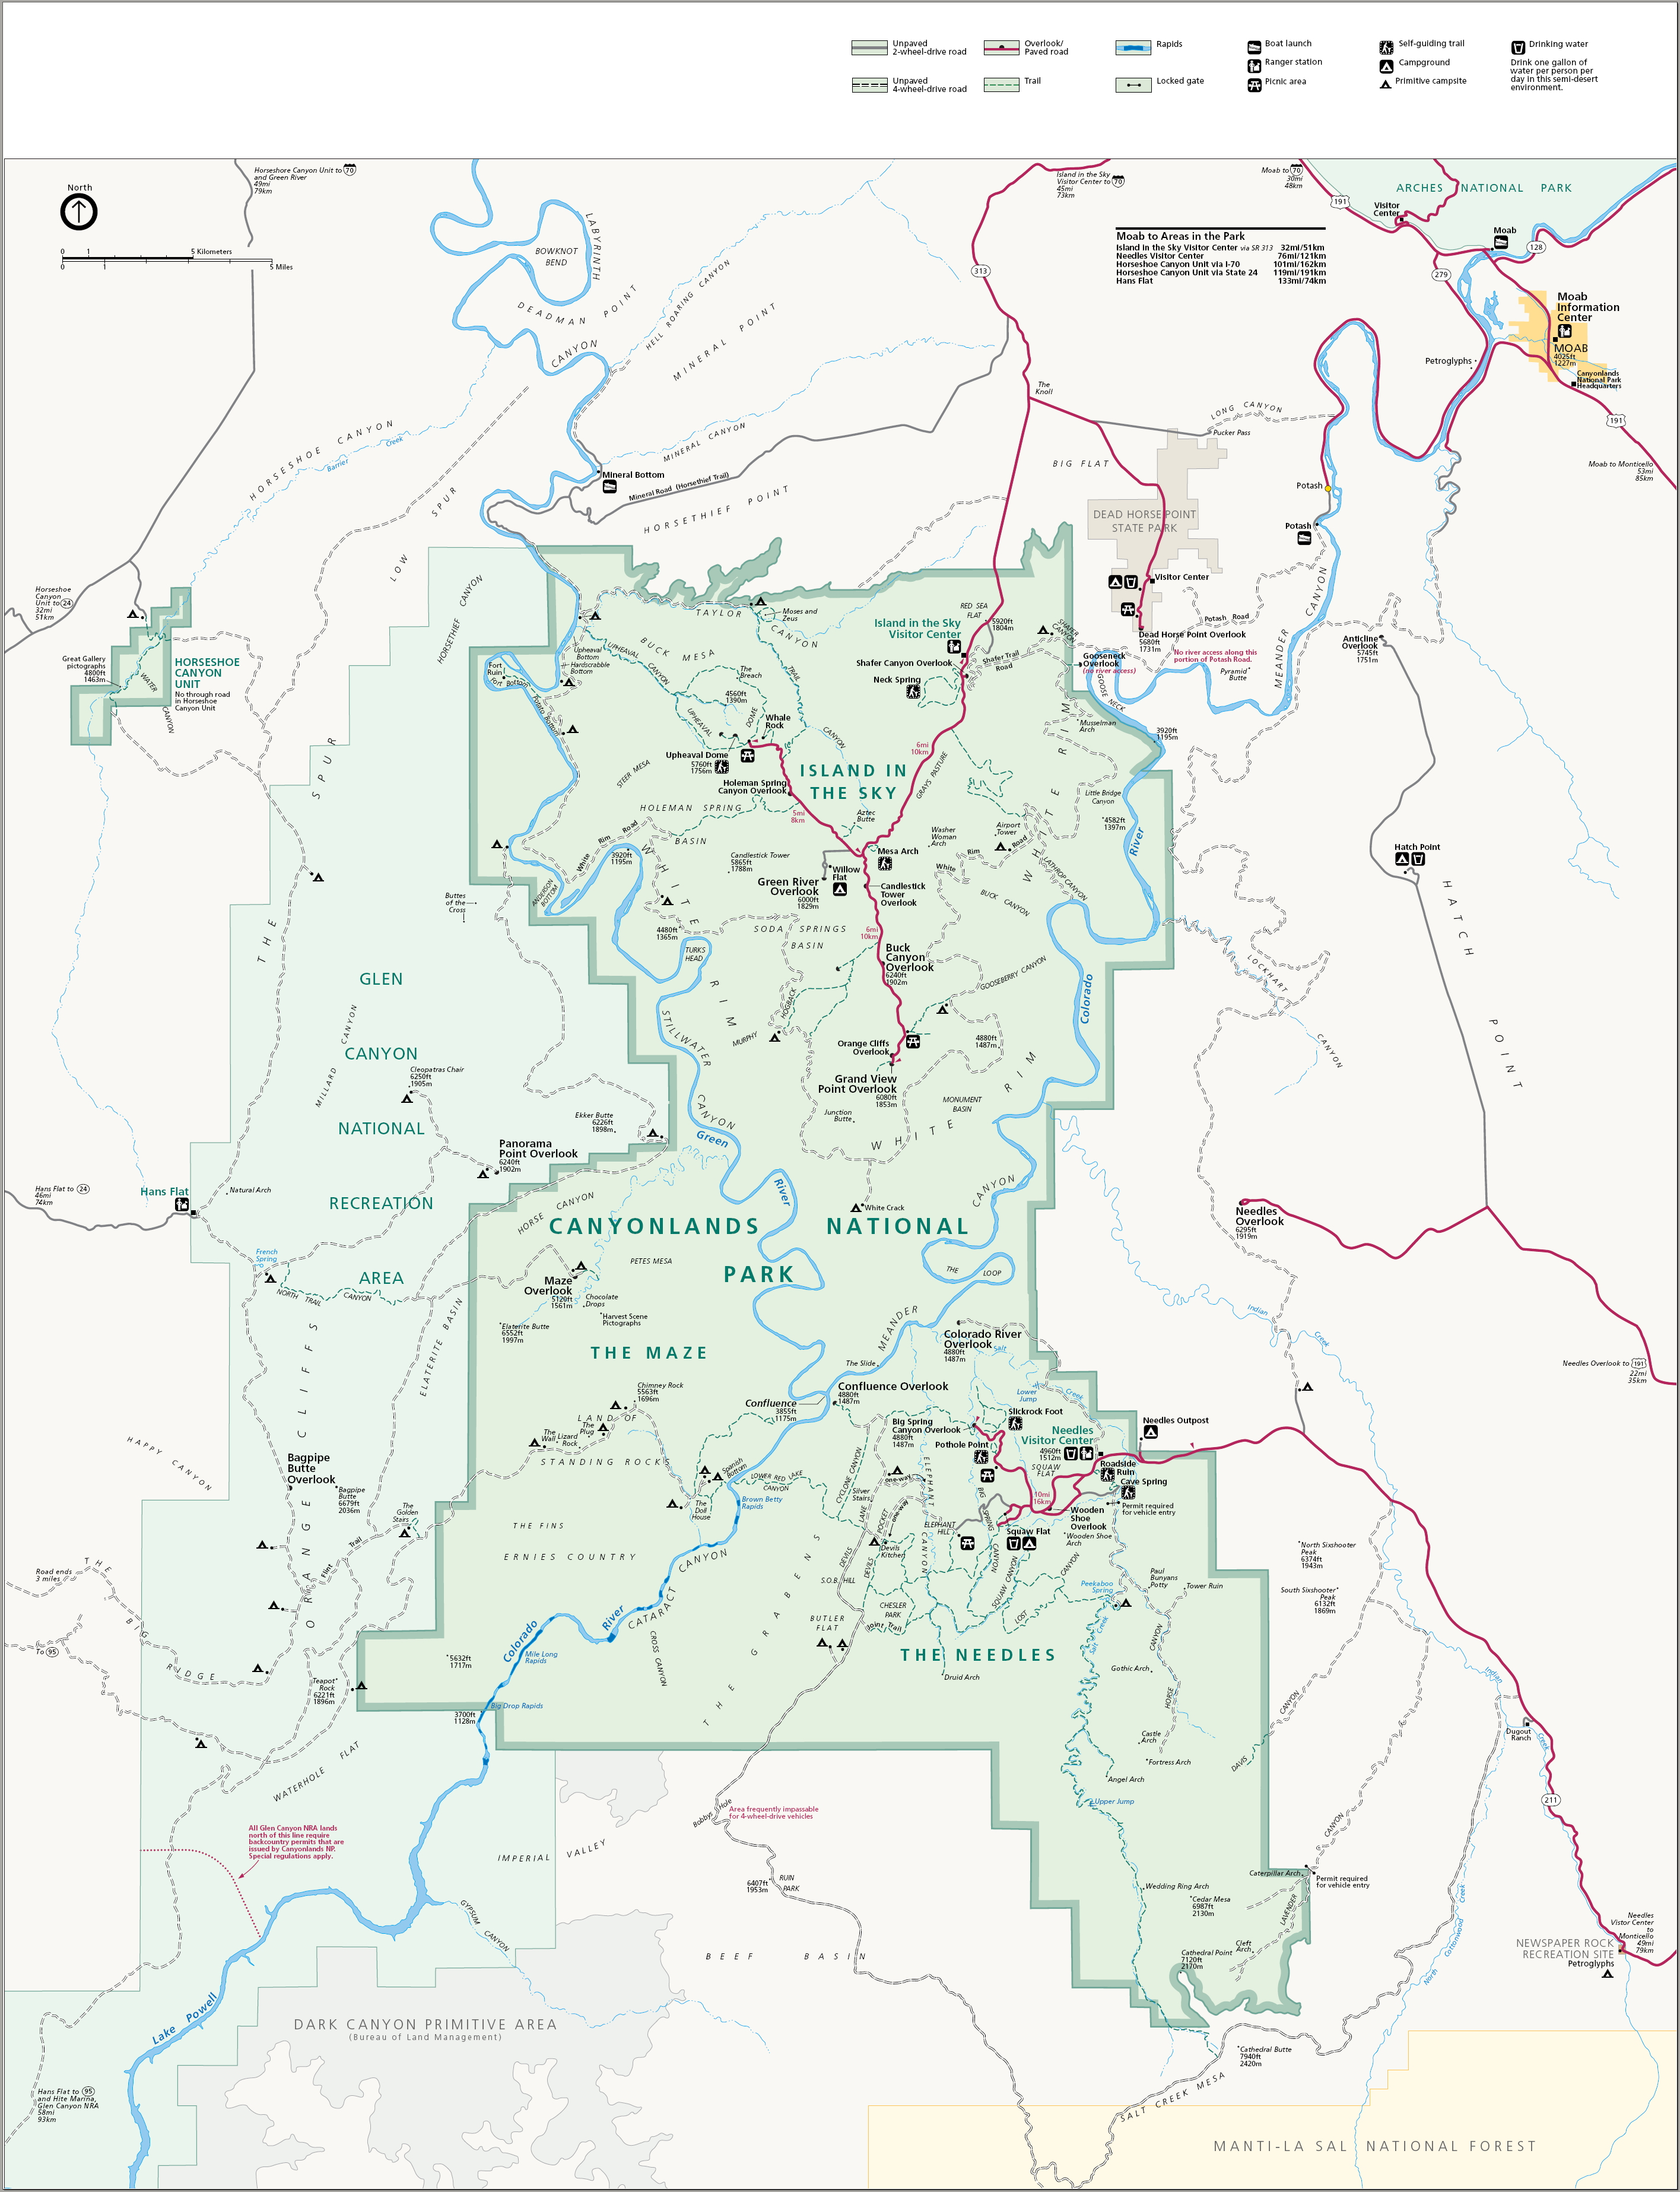 FileMap of Canyonlands National Parkjpg Wikimedia Commons